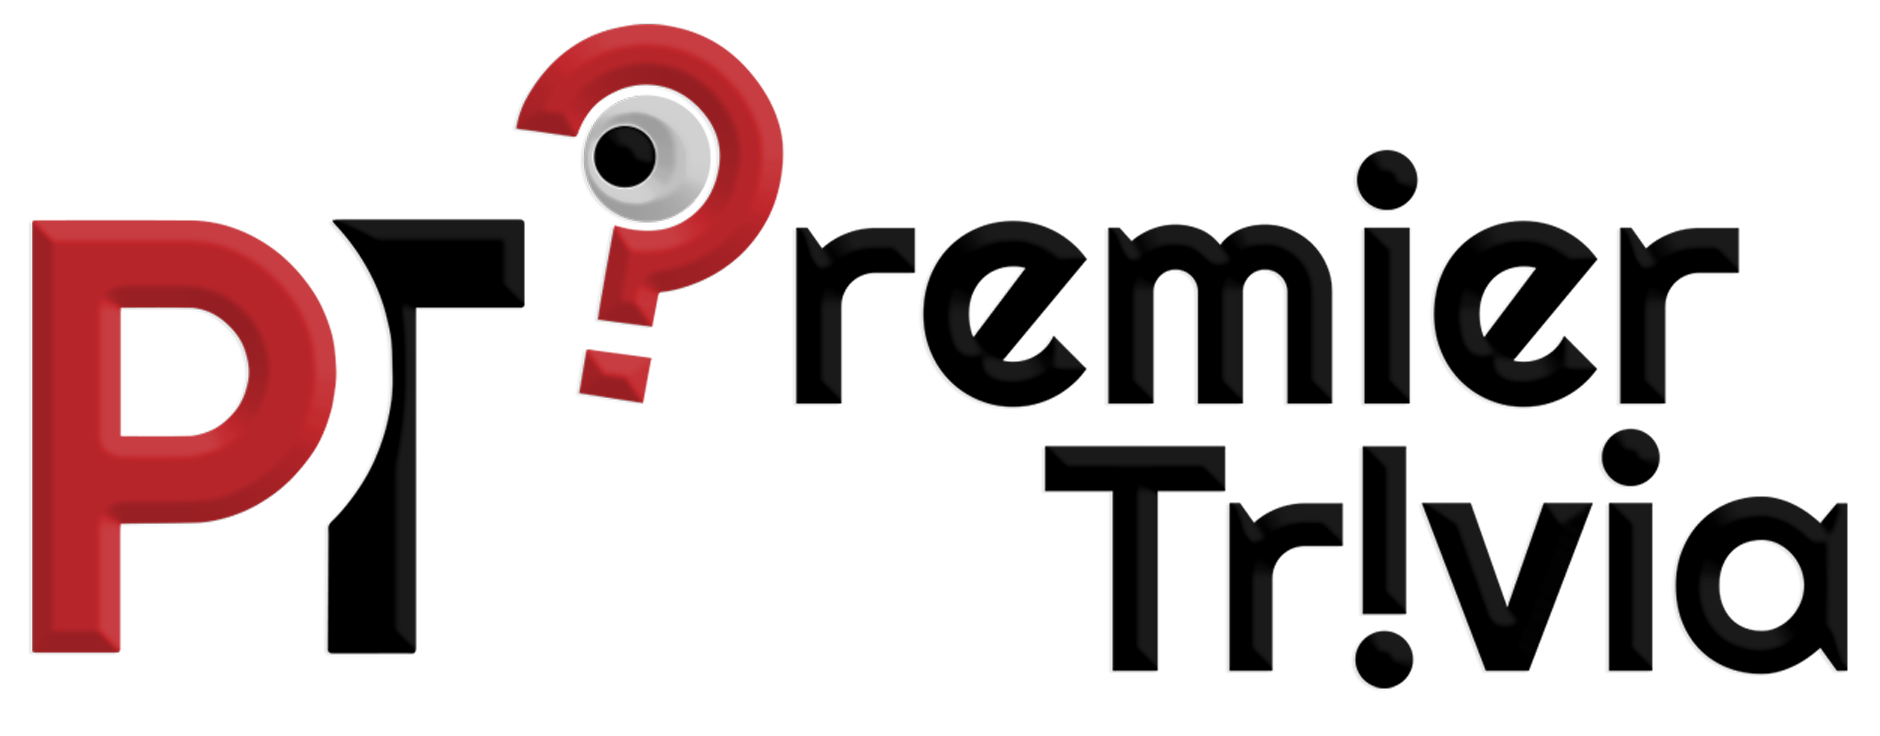 http://www.wipremiertrivia.com/wp-content/uploads/2017/03/LOGO-Cropped-01.png